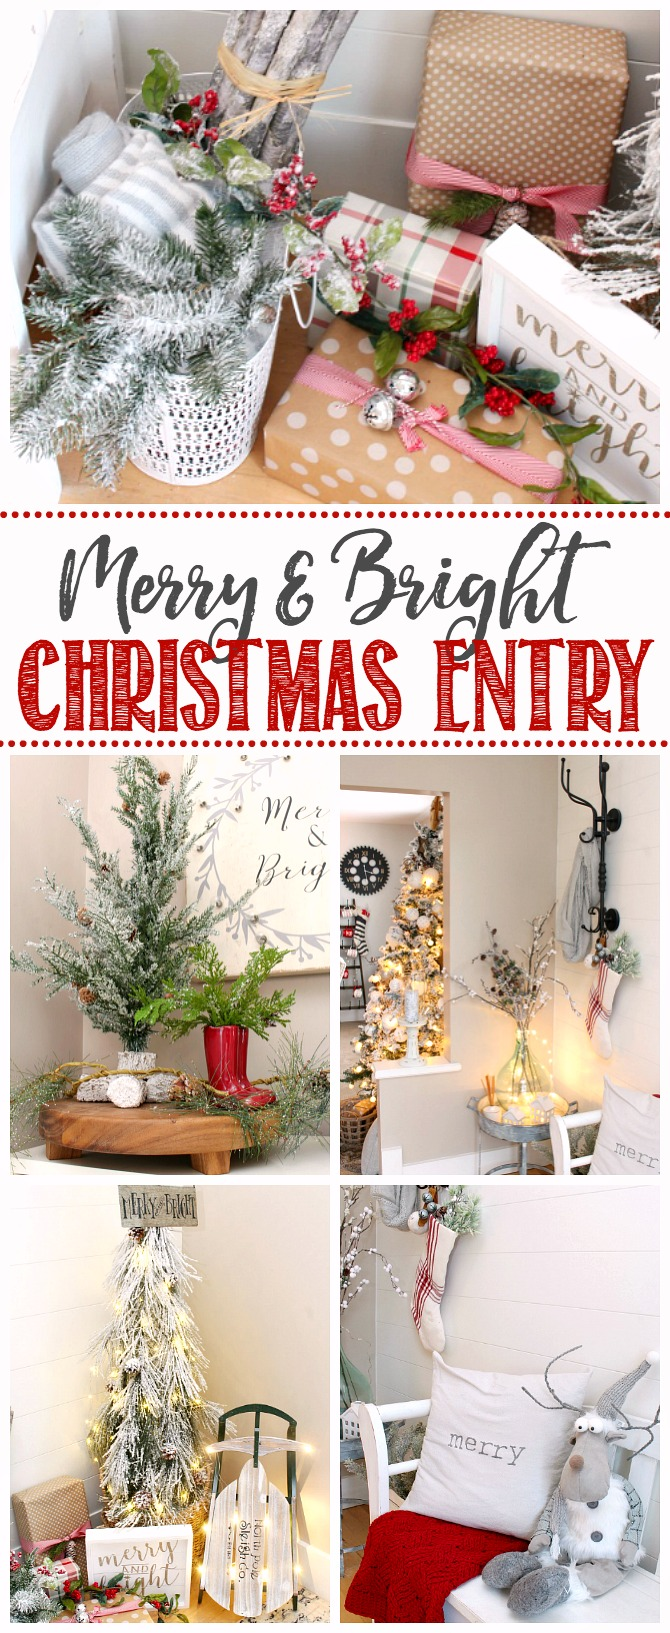 Beautiful Christmas front entry decorating ideas.